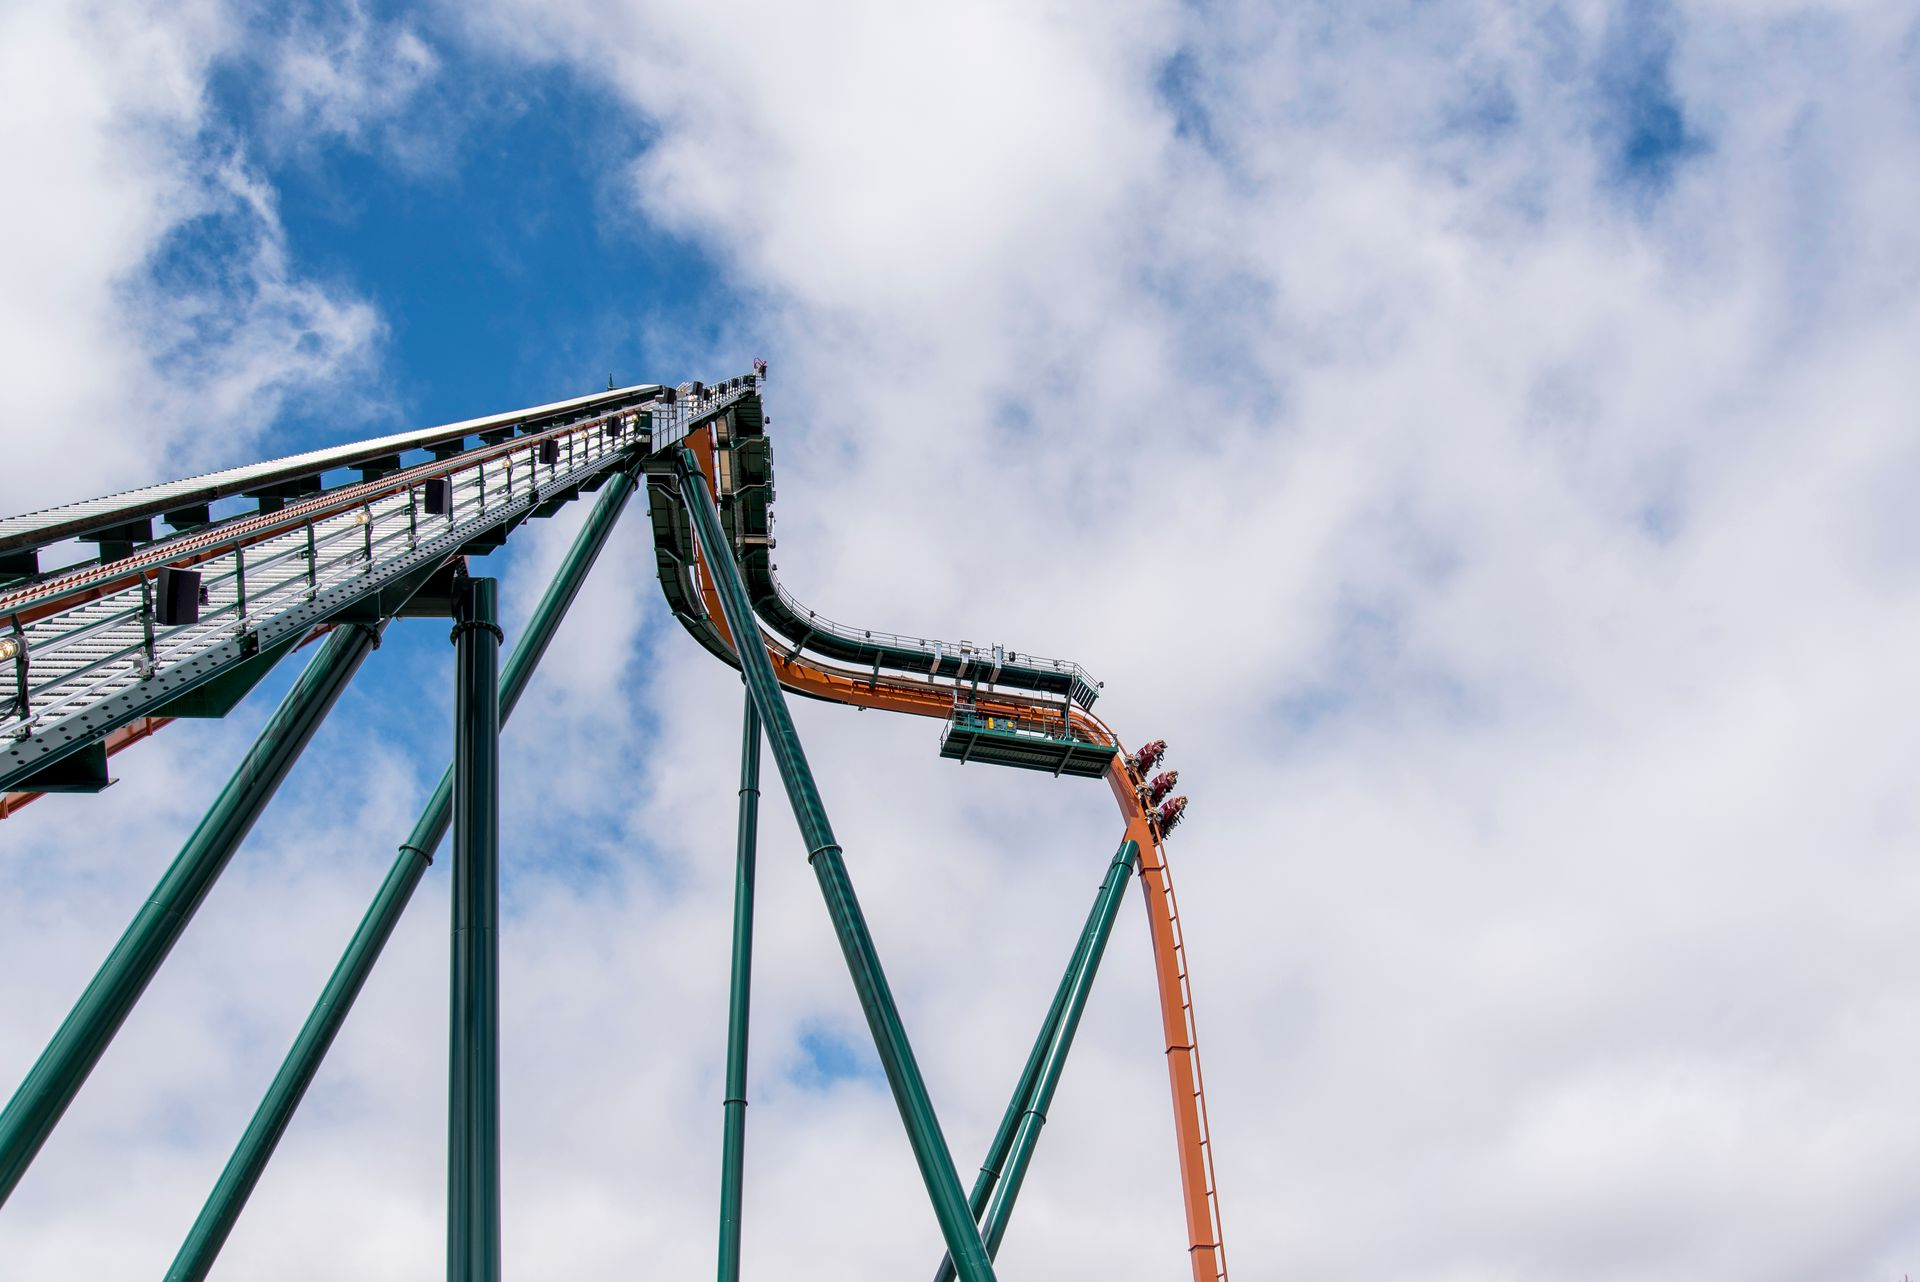 Canada's Wonderland drops its latest coaster